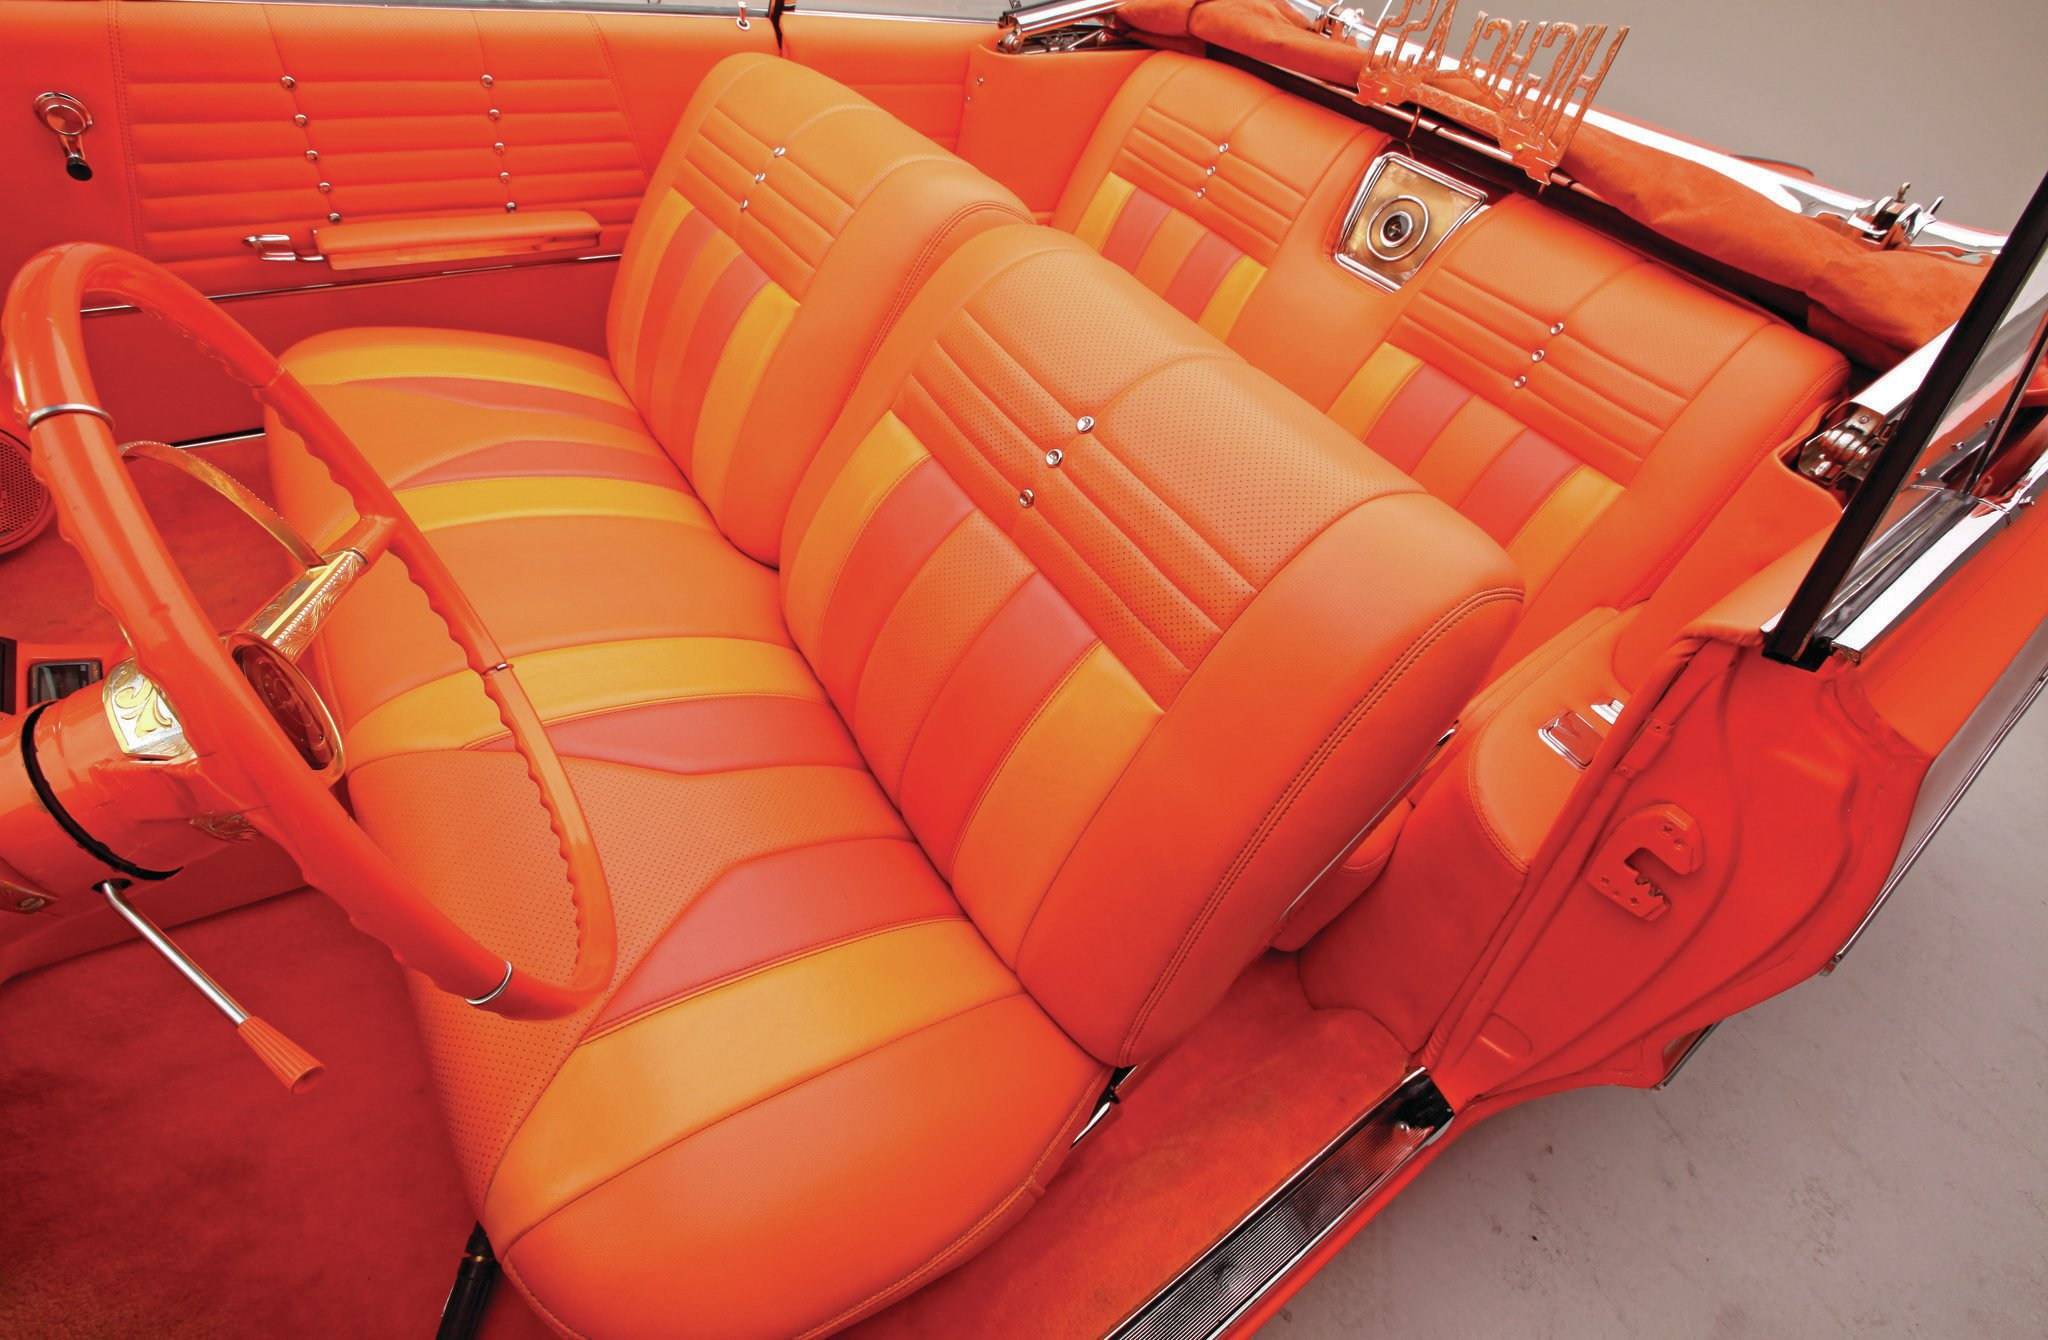 Miraculous 1964 Chevrolet Impala Convertible Orange Vinyl By California Gmtry Best Dining Table And Chair Ideas Images Gmtryco